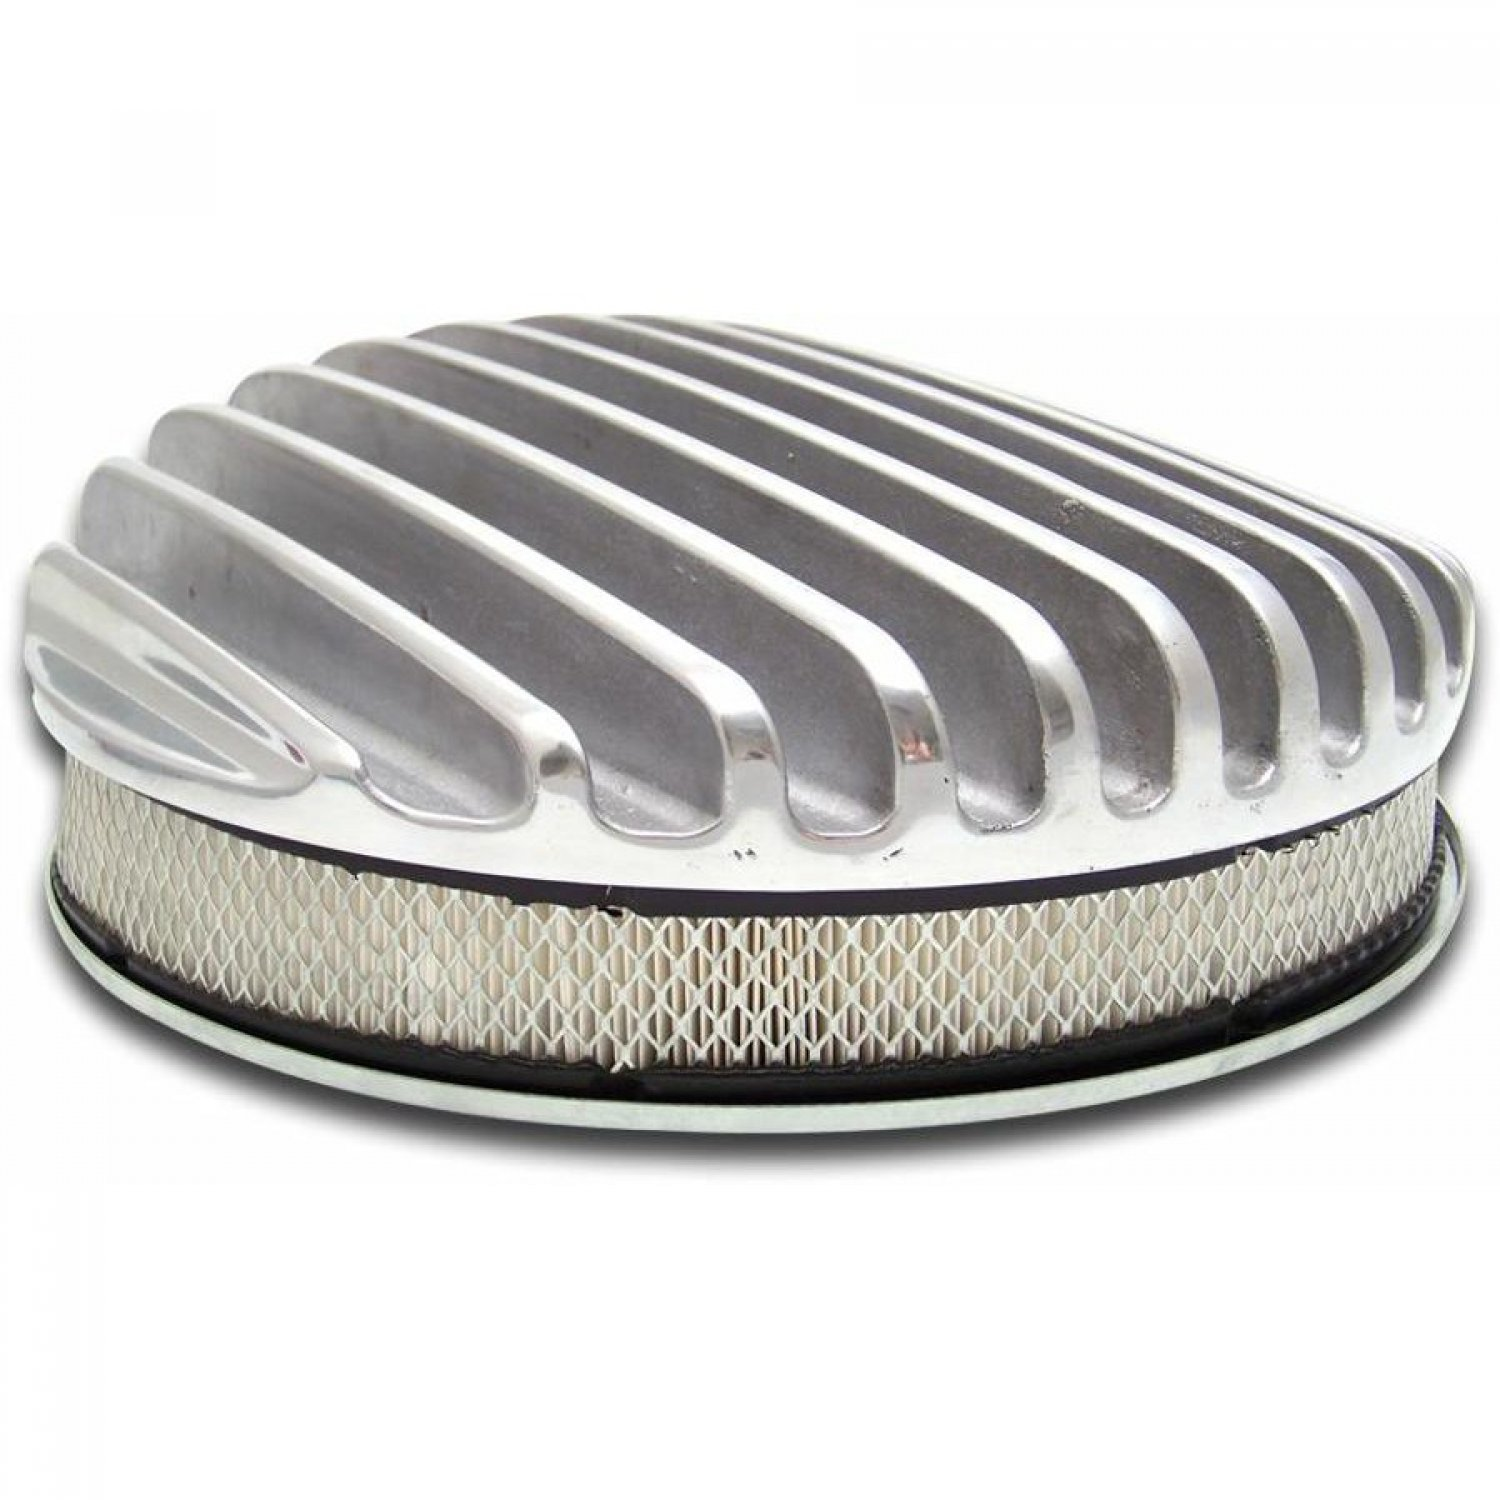 Chevy 350 Air Cleaner : Sand cast street rod air cleaner for bbc sbc chevy motor